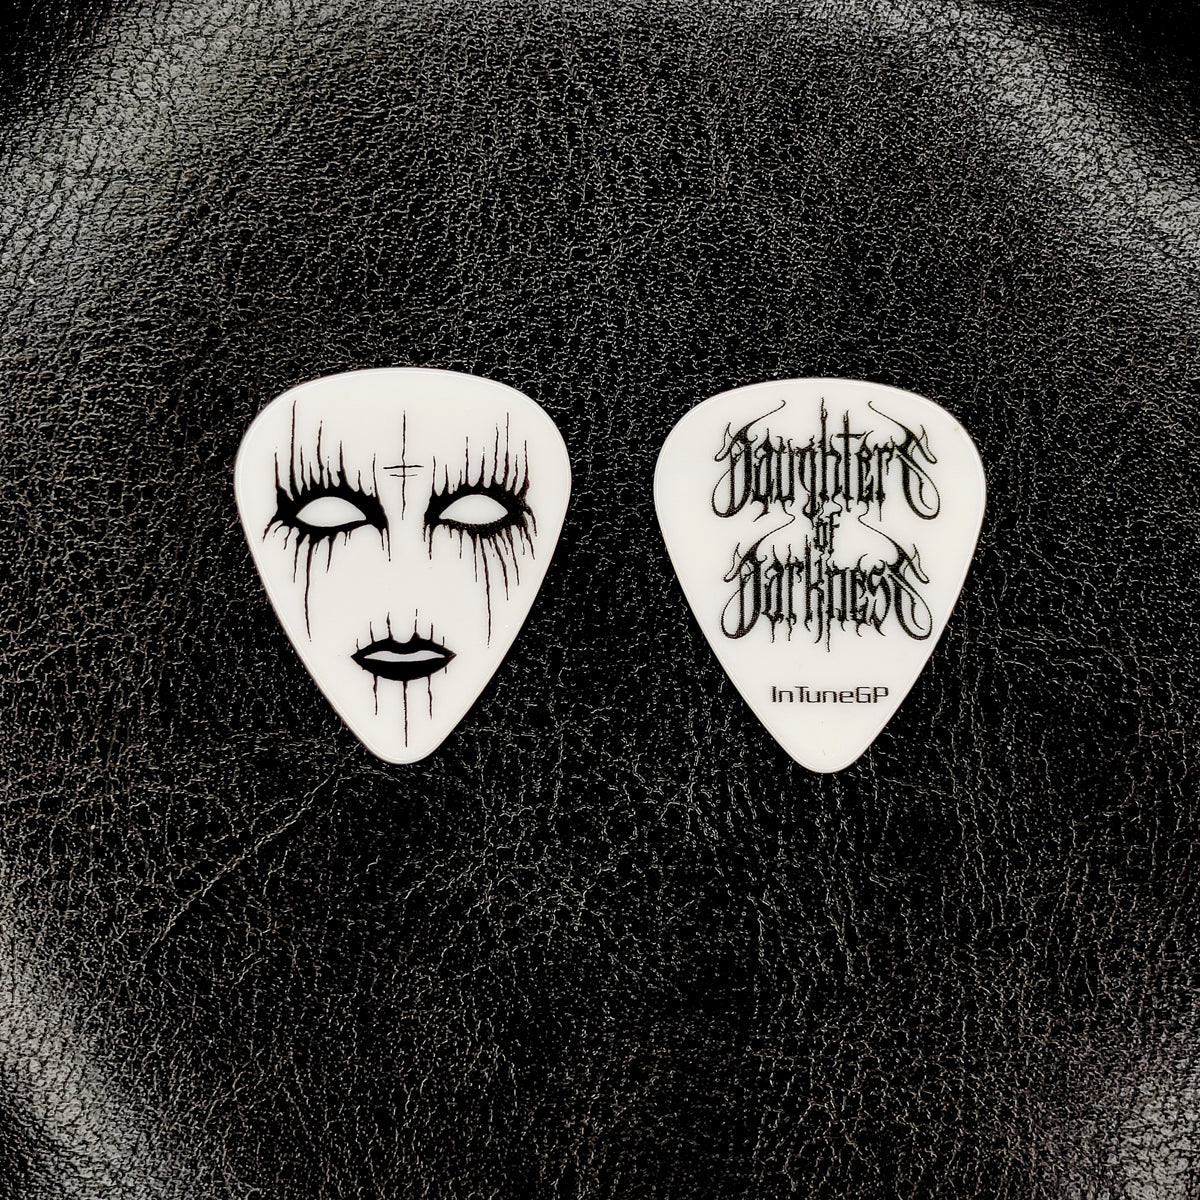 Daughters of Darkness - Leanansidthe 2 - Guitar Pick